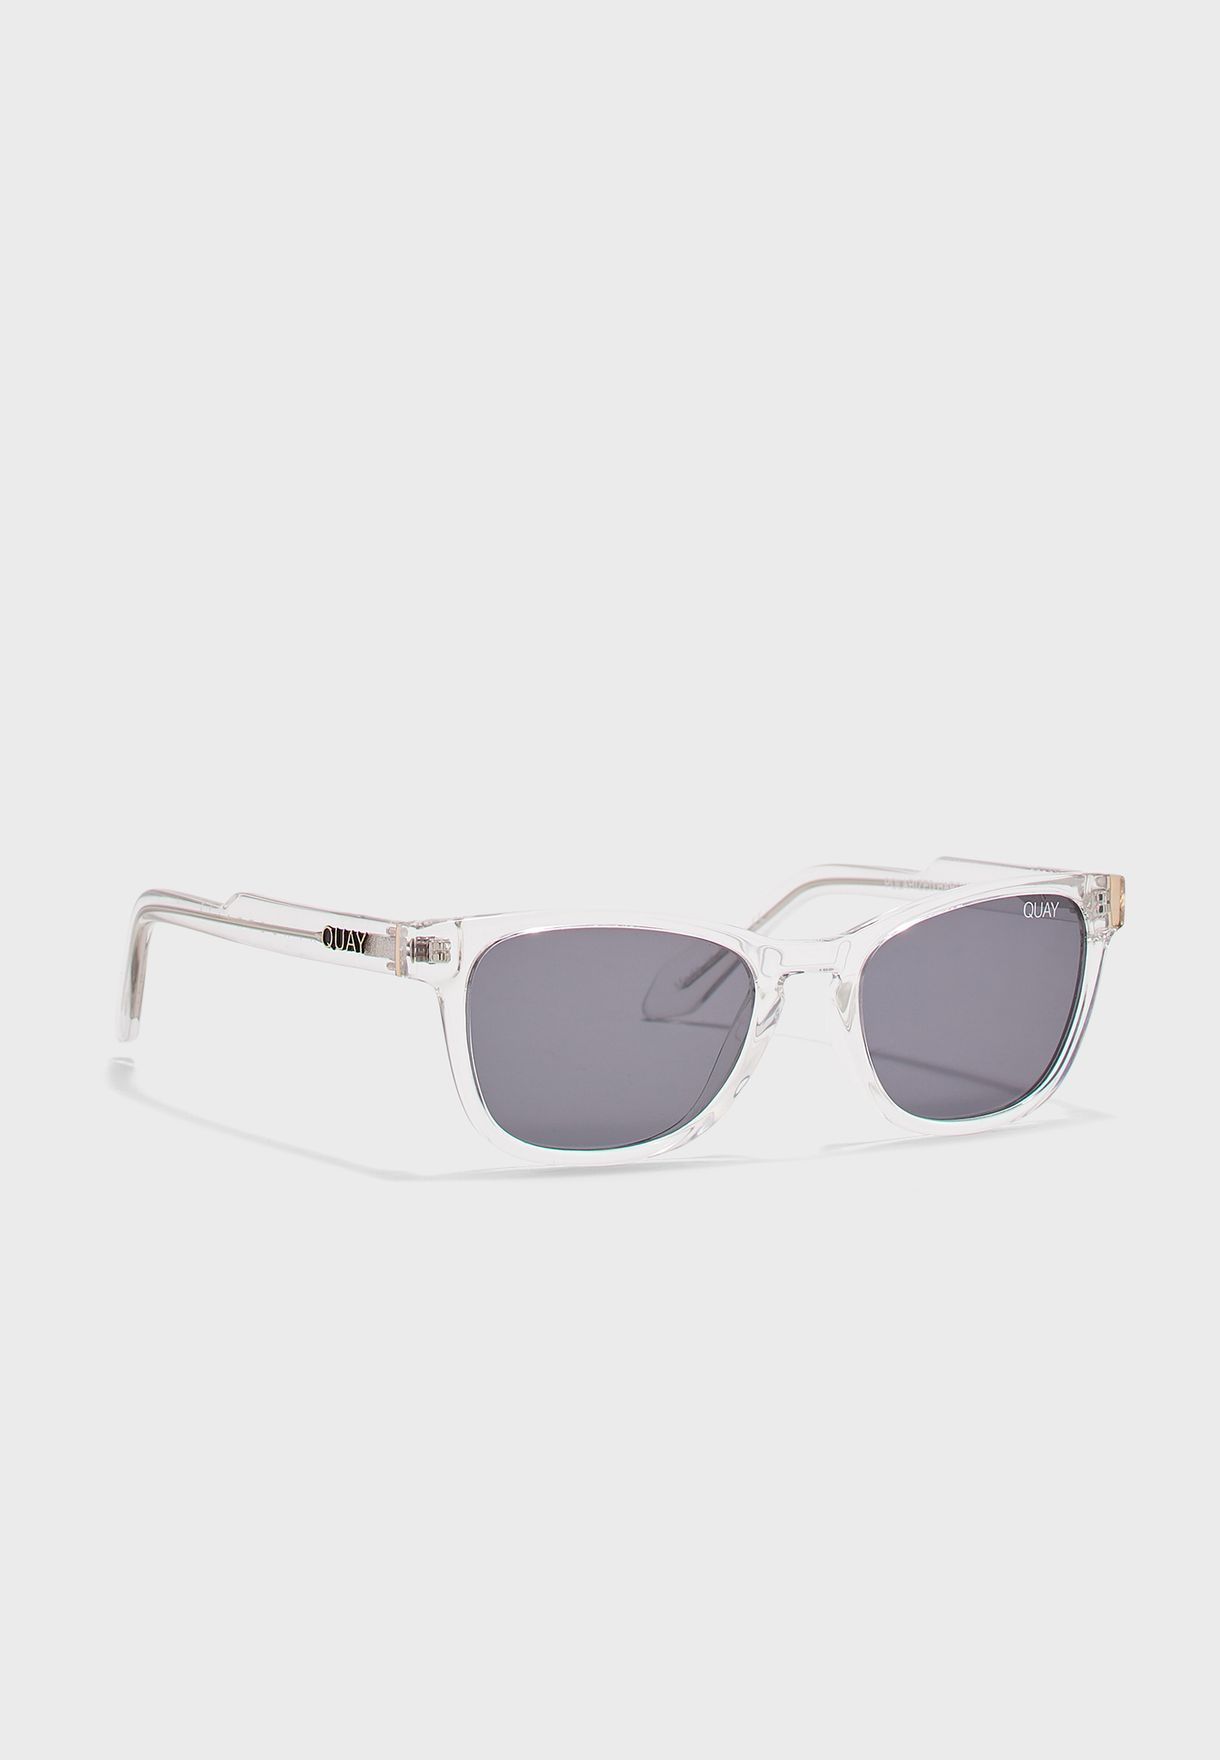 Hardwire Mini Wayfarer Sunglasses